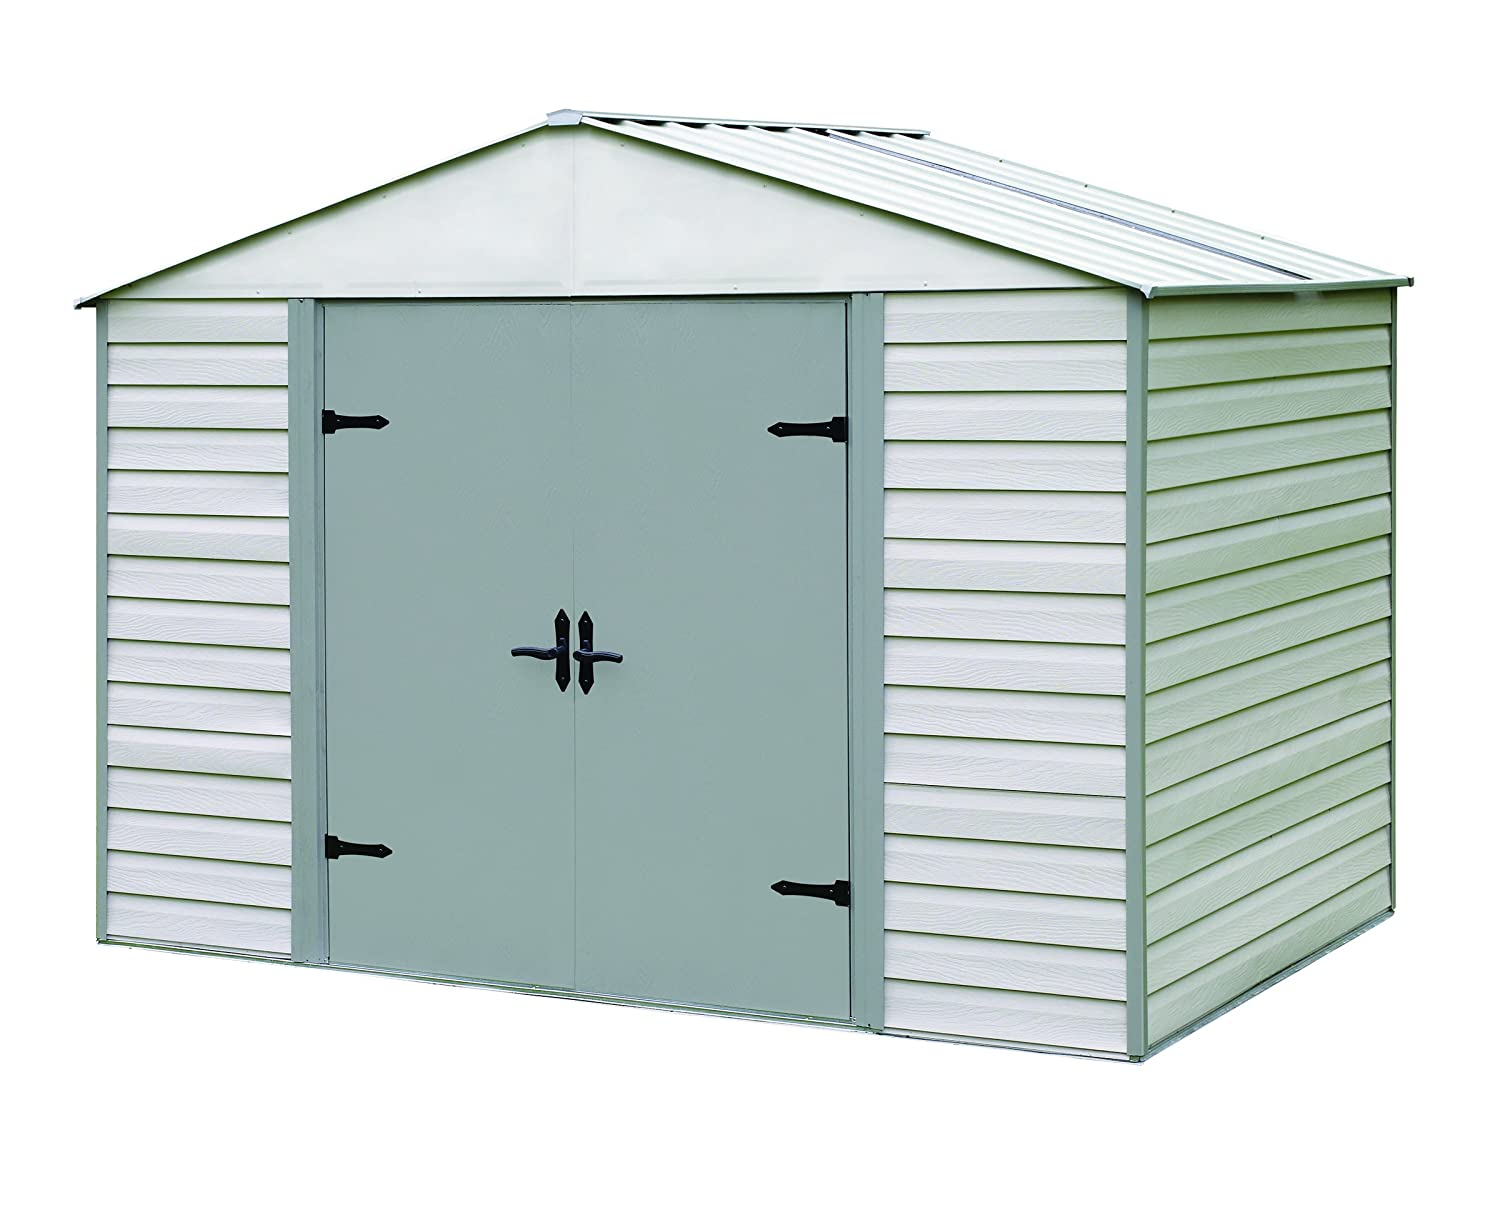 amazoncom arrow shed viking vinyl coated steel shed 10 x 7 patio lawn garden